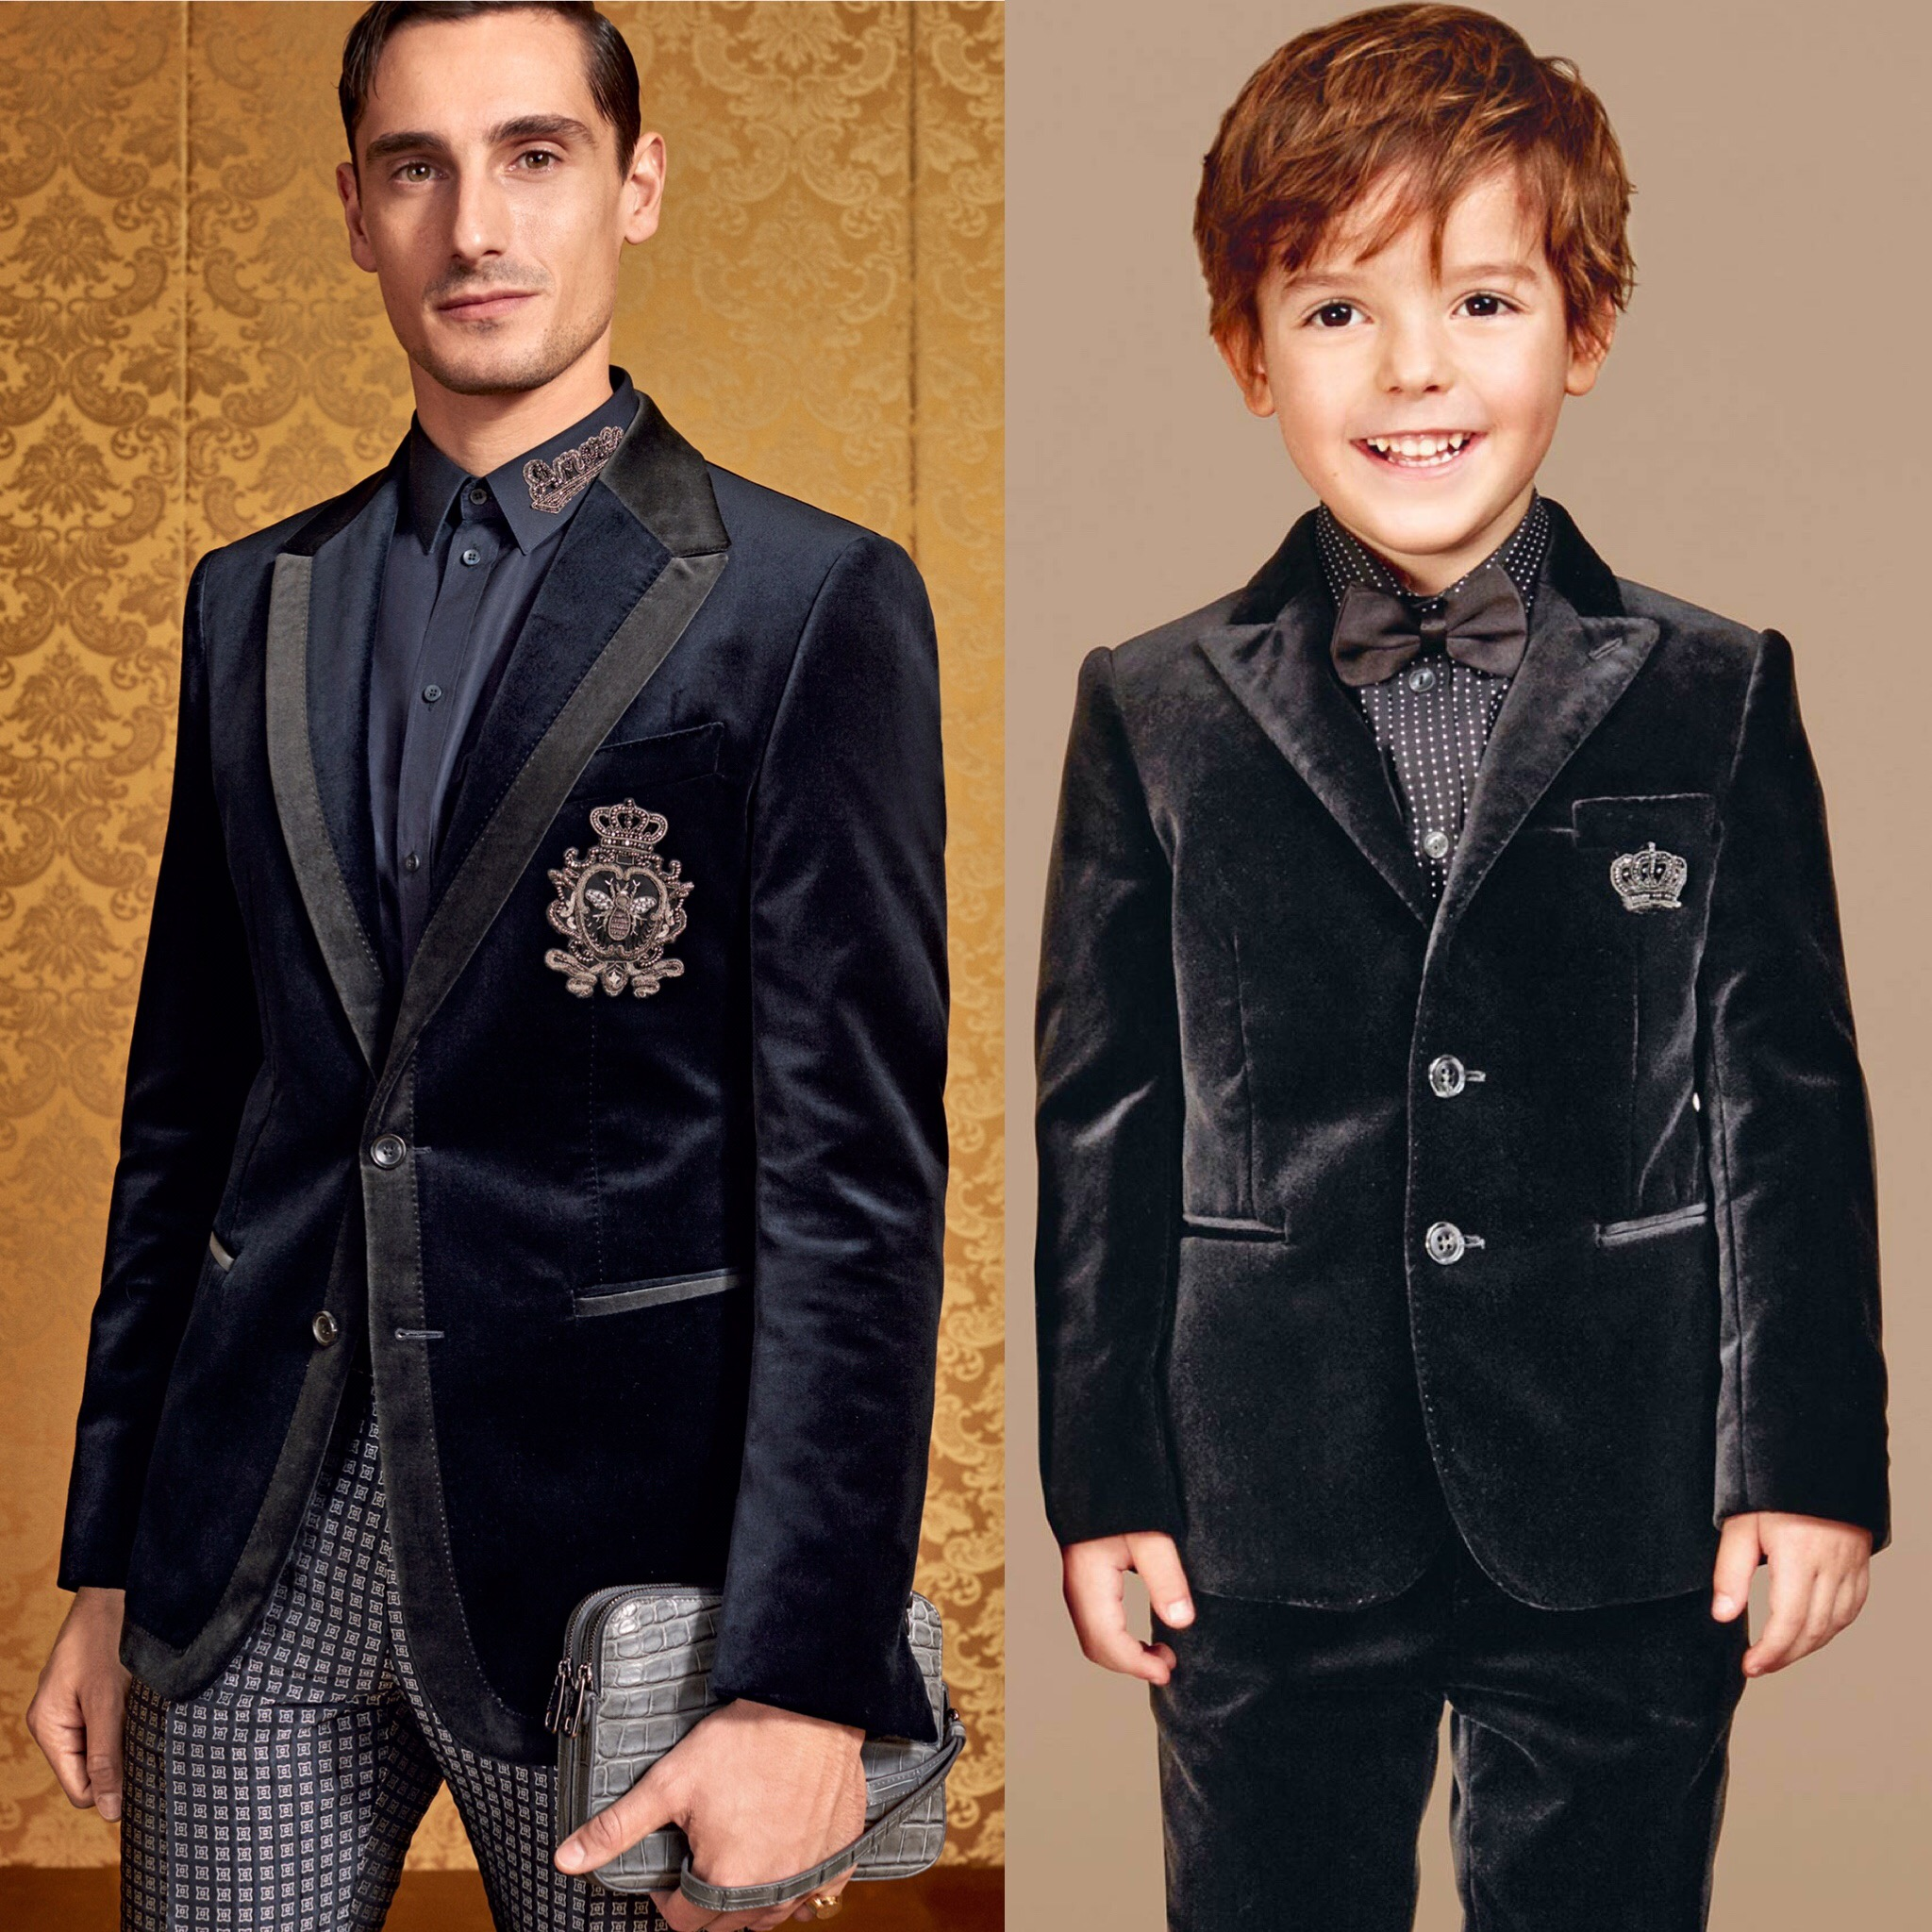 DOLCE & GABBANA Boys Luxurious Mini Me Black Crown 2 Piece Suit